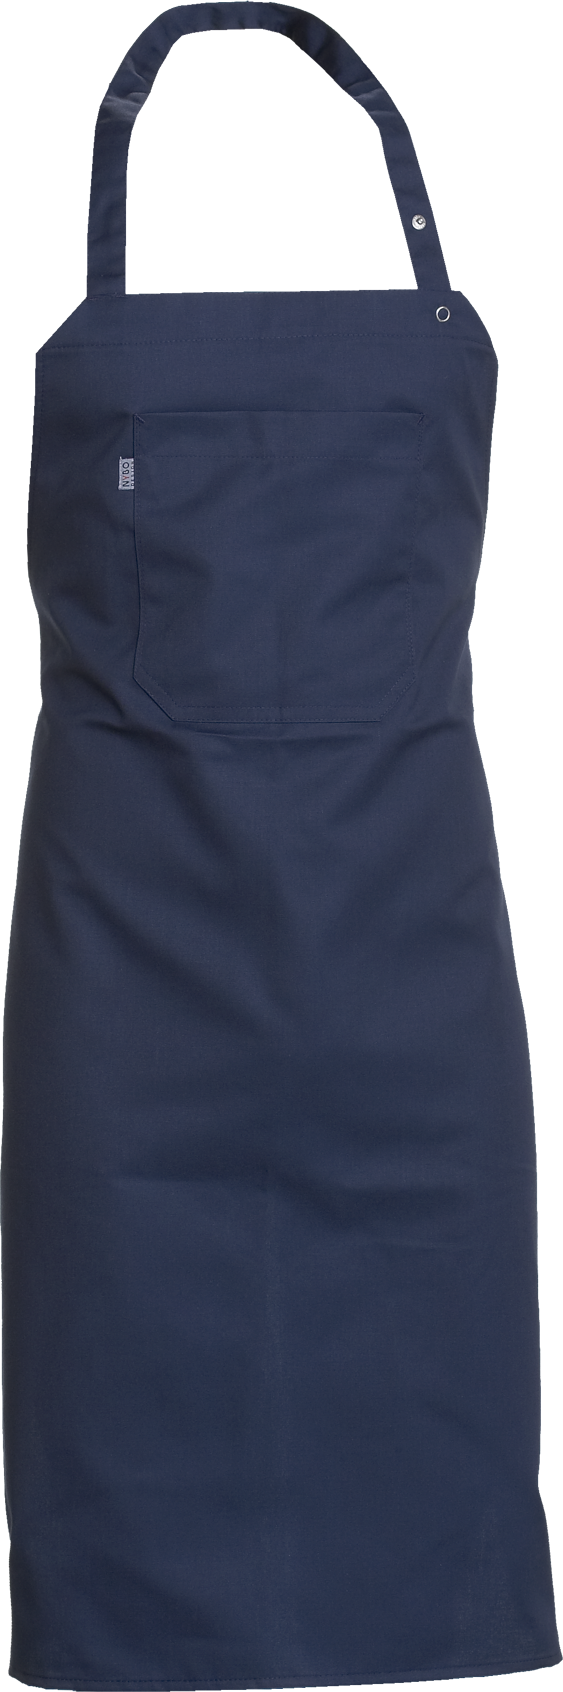 Apron with front pocket (610001100)